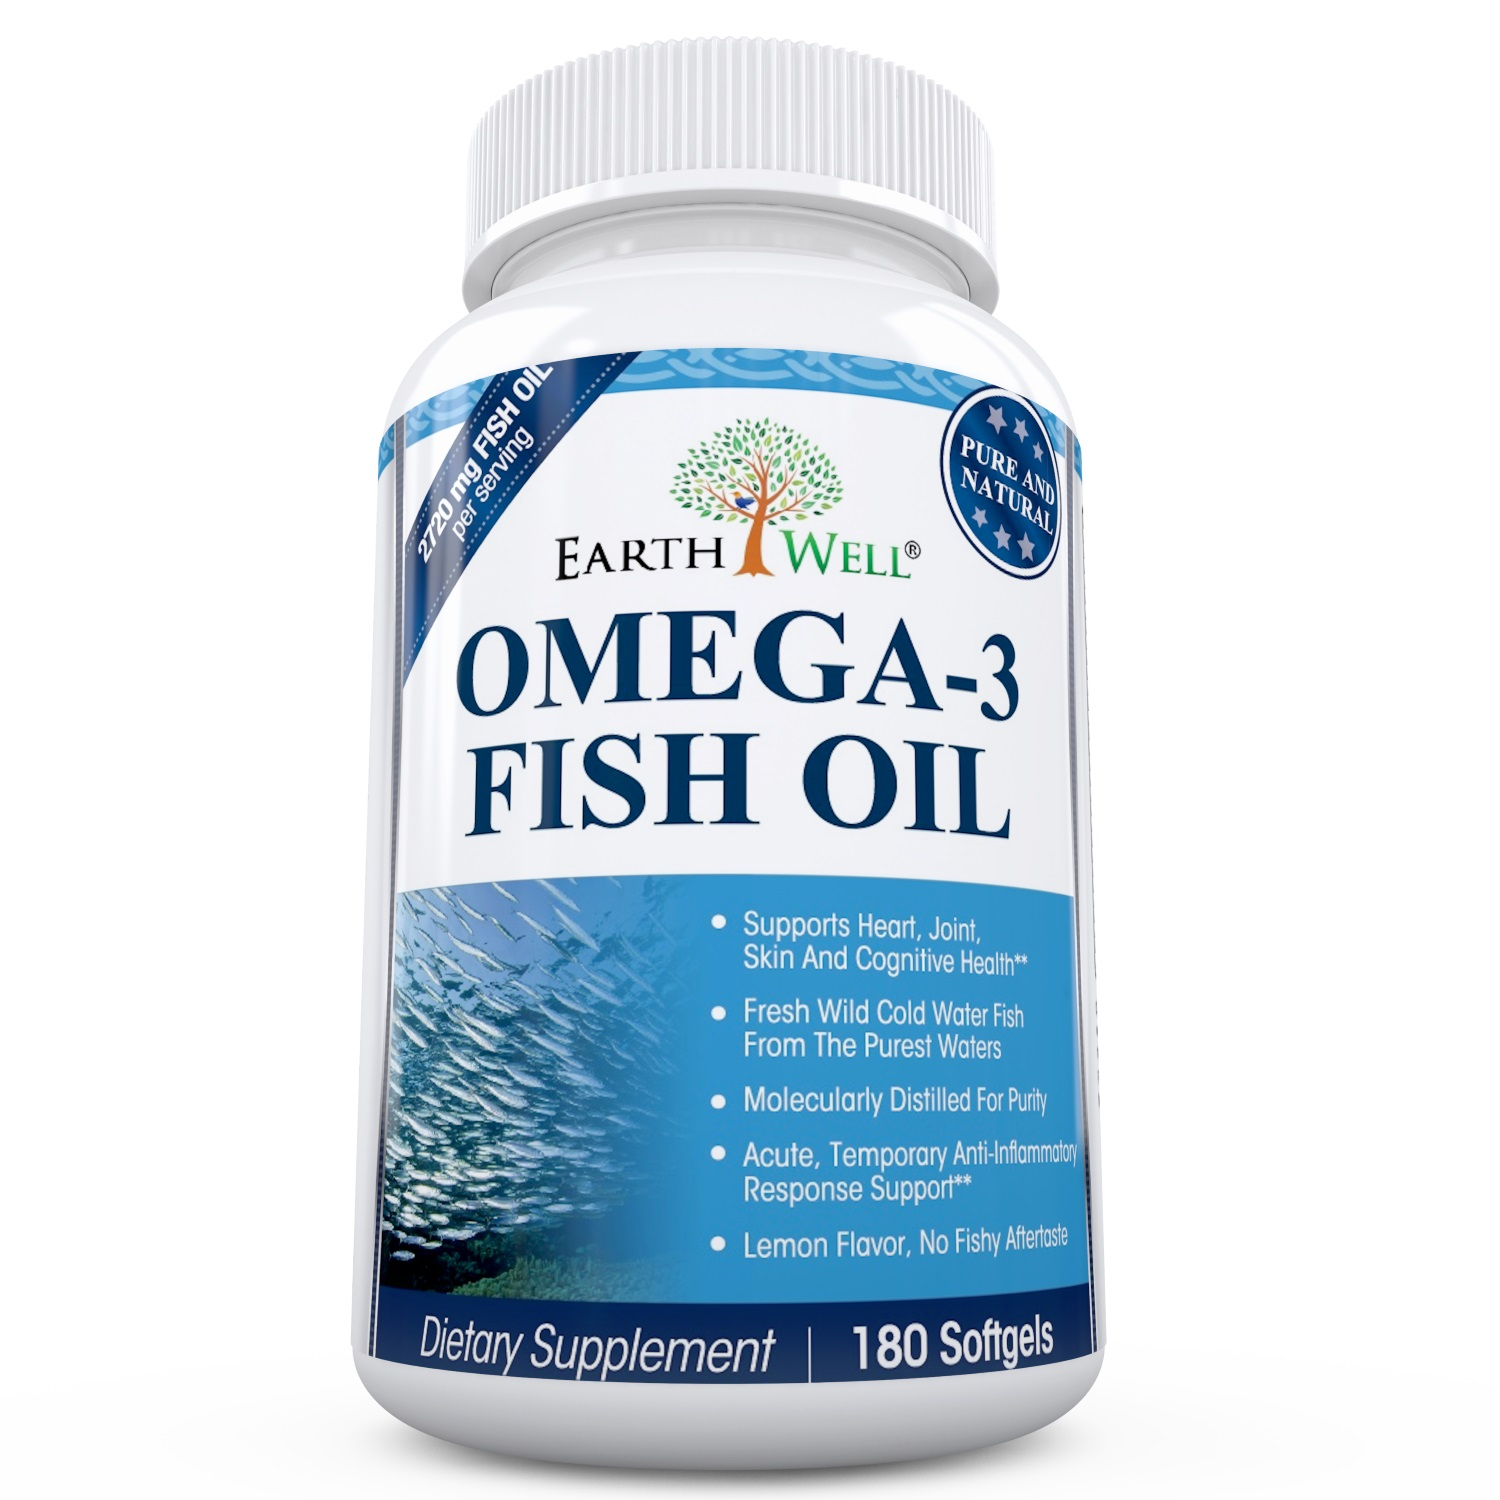 Flora 39 s life facts about omega 3 fatty acids for Omega 3 fatty acid fish